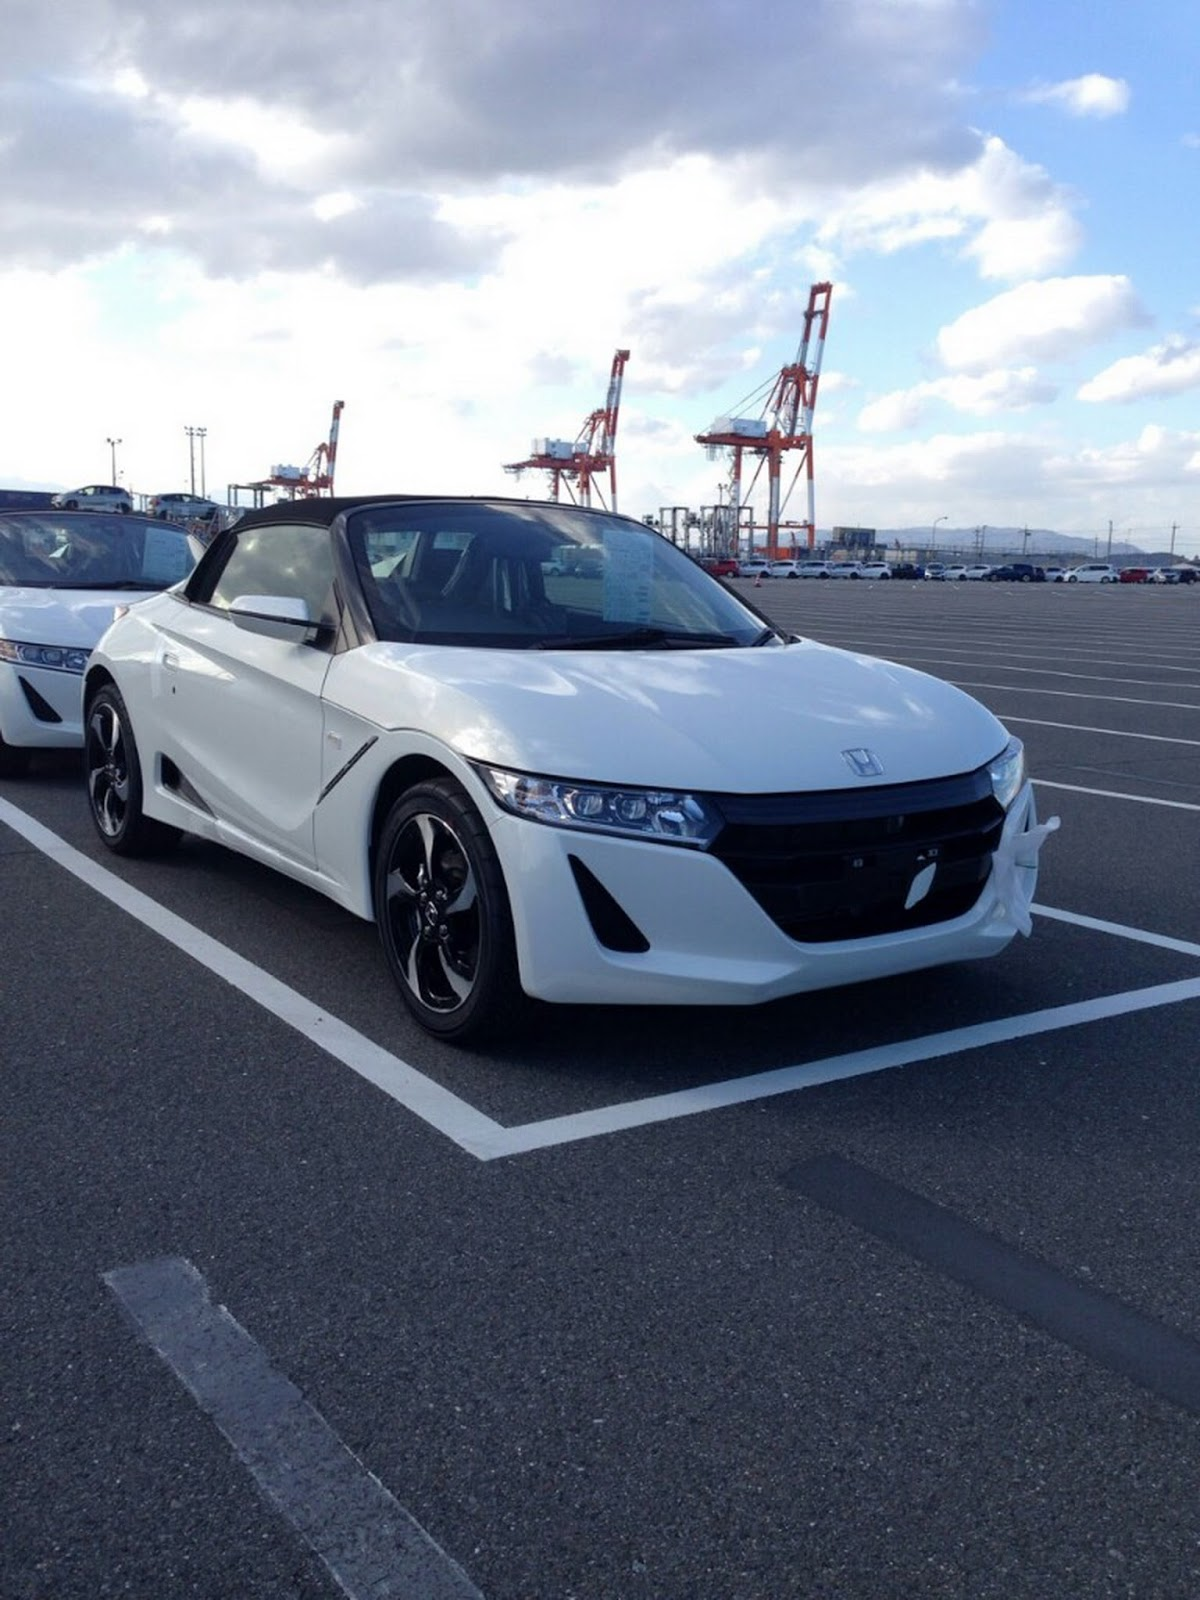 New Honda S660 Roadster Scooped Undisguised In Production ...